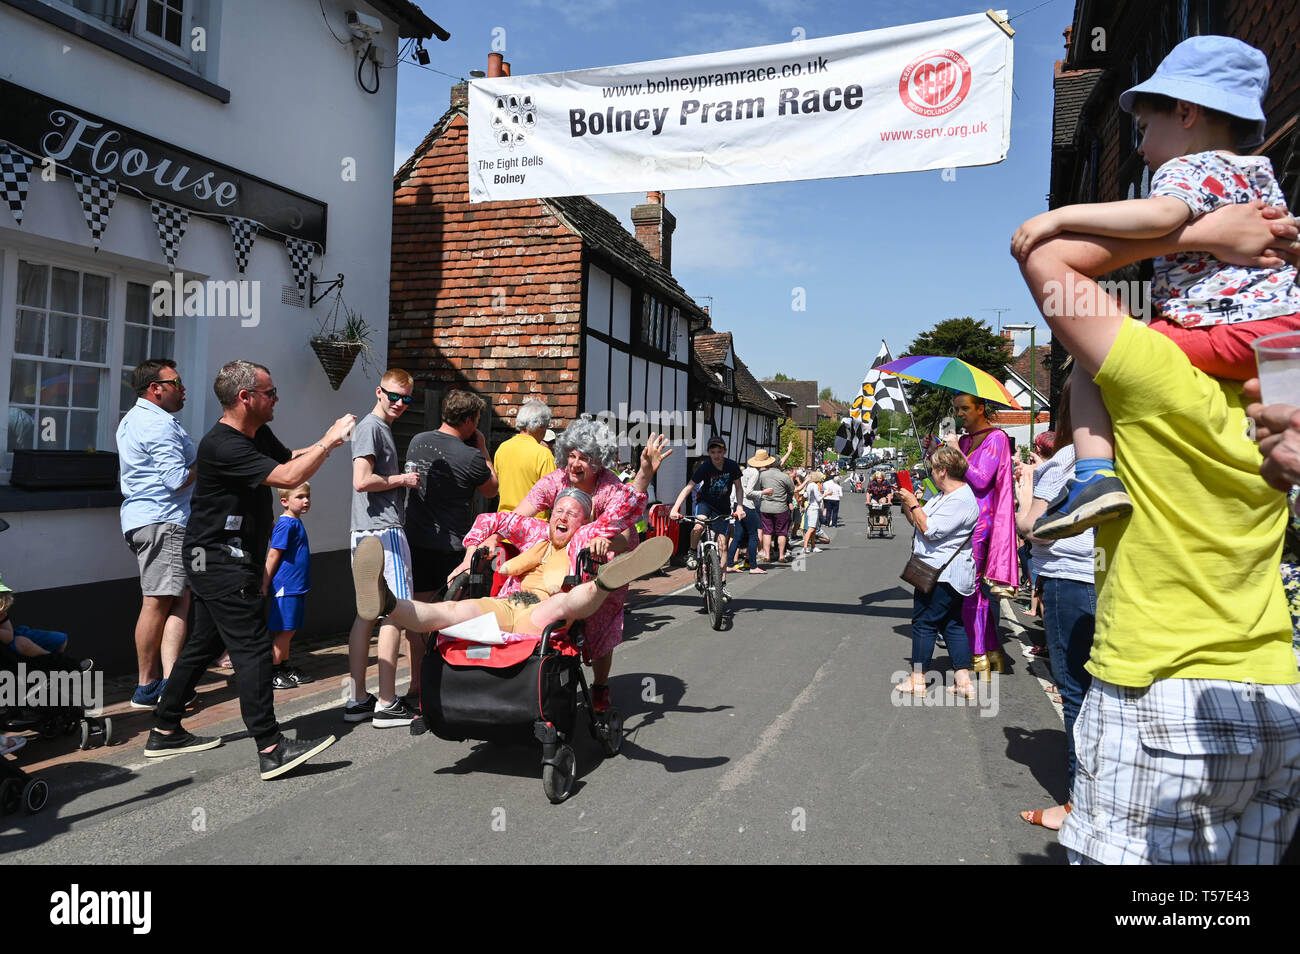 Bolney Sussex, UK. 22nd Apr, 2019. Competitors celebrate finishing the annual Bolney Pram Race in hot sunny weather . The annual races start and finish at the Eight Bells Pub in the village every Easter Bank Holiday Monday Credit: Simon Dack/Alamy Live News Stock Photo